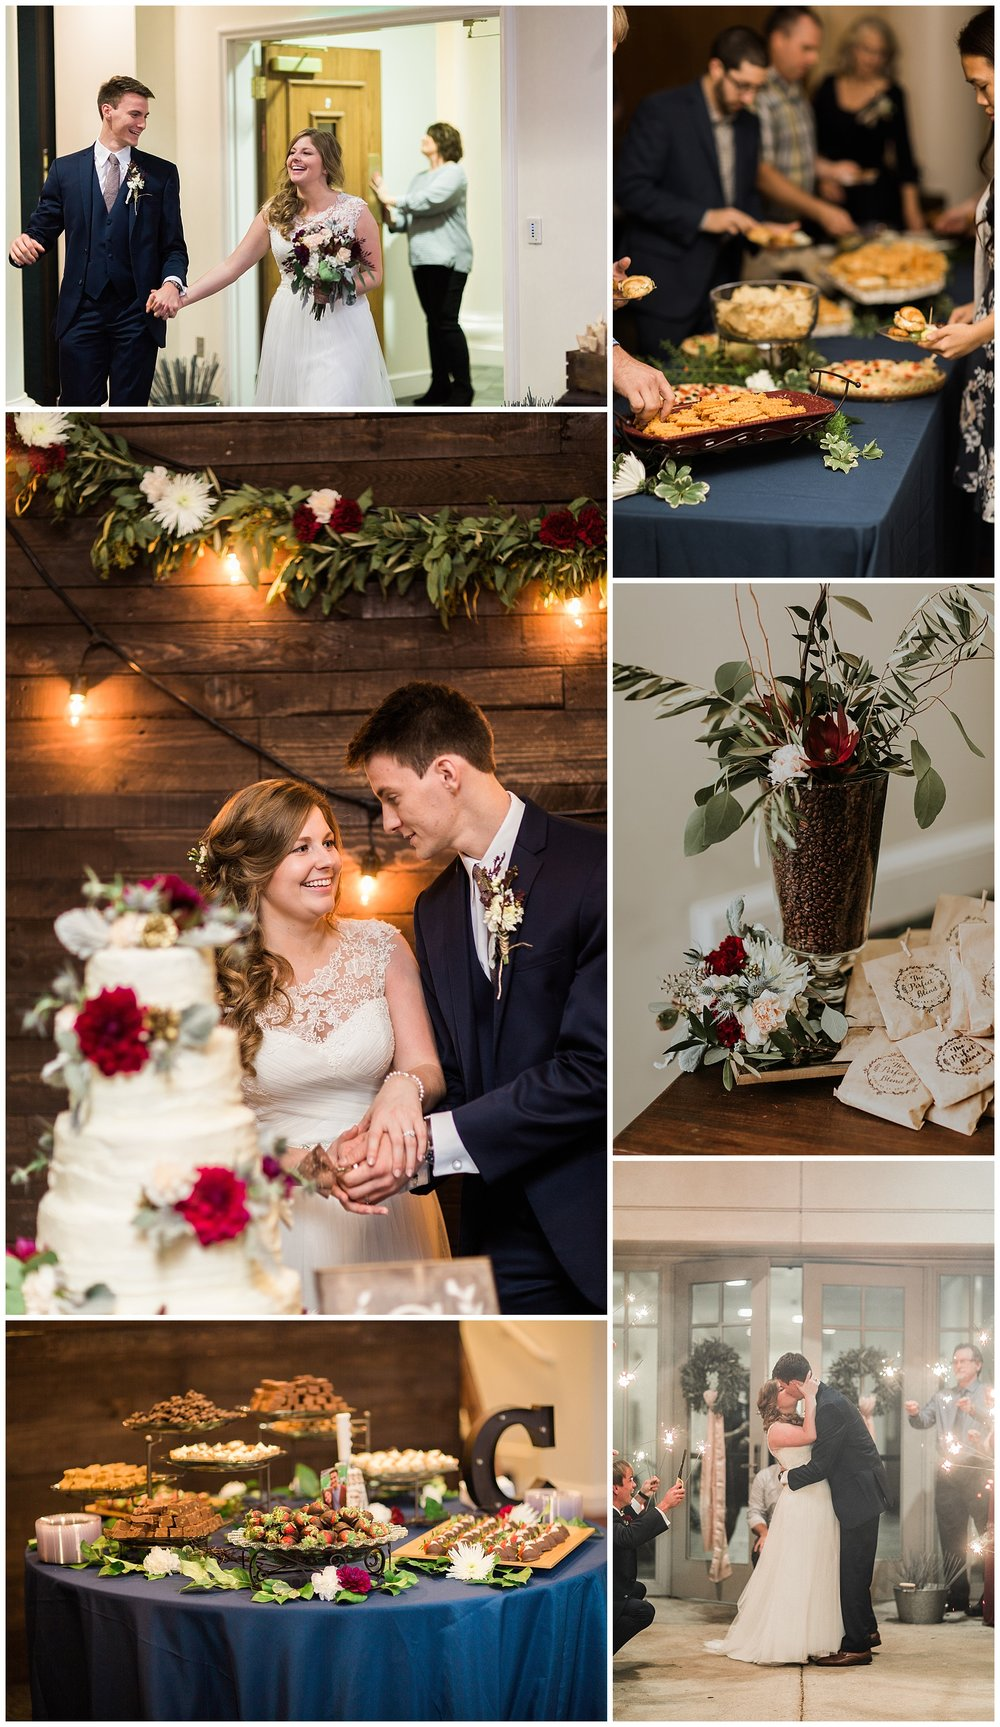 Venue: First Baptist Montgomery Video: Lex & Lee Hair: Callie at Belle & Beau Salon